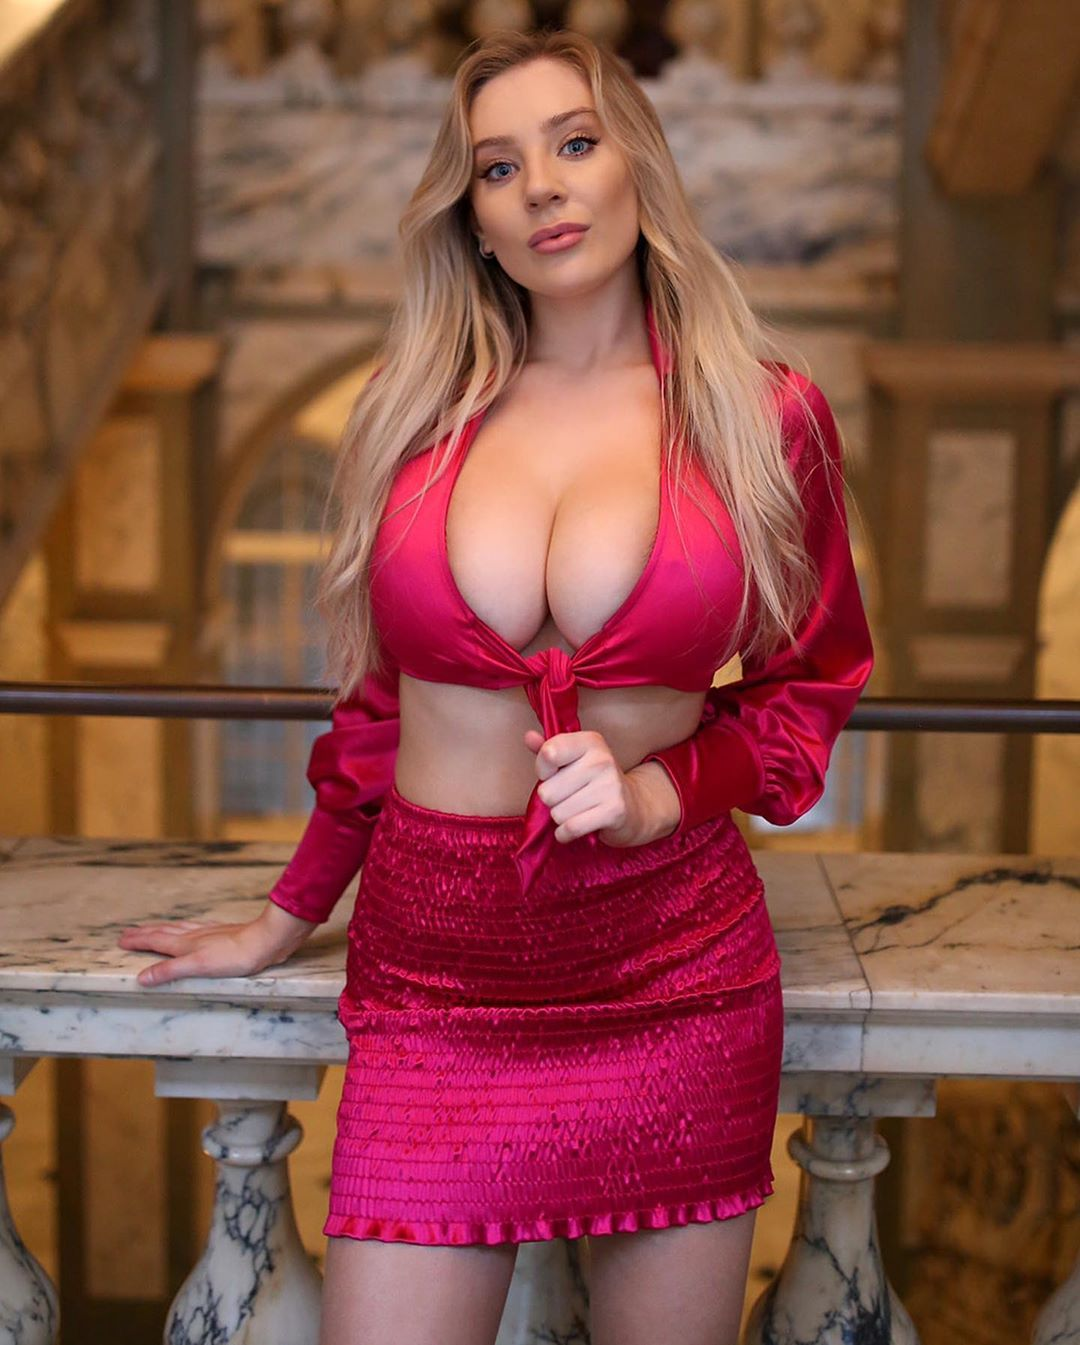 Miss BoobsRealm 2020 Group C- Busty Glamour